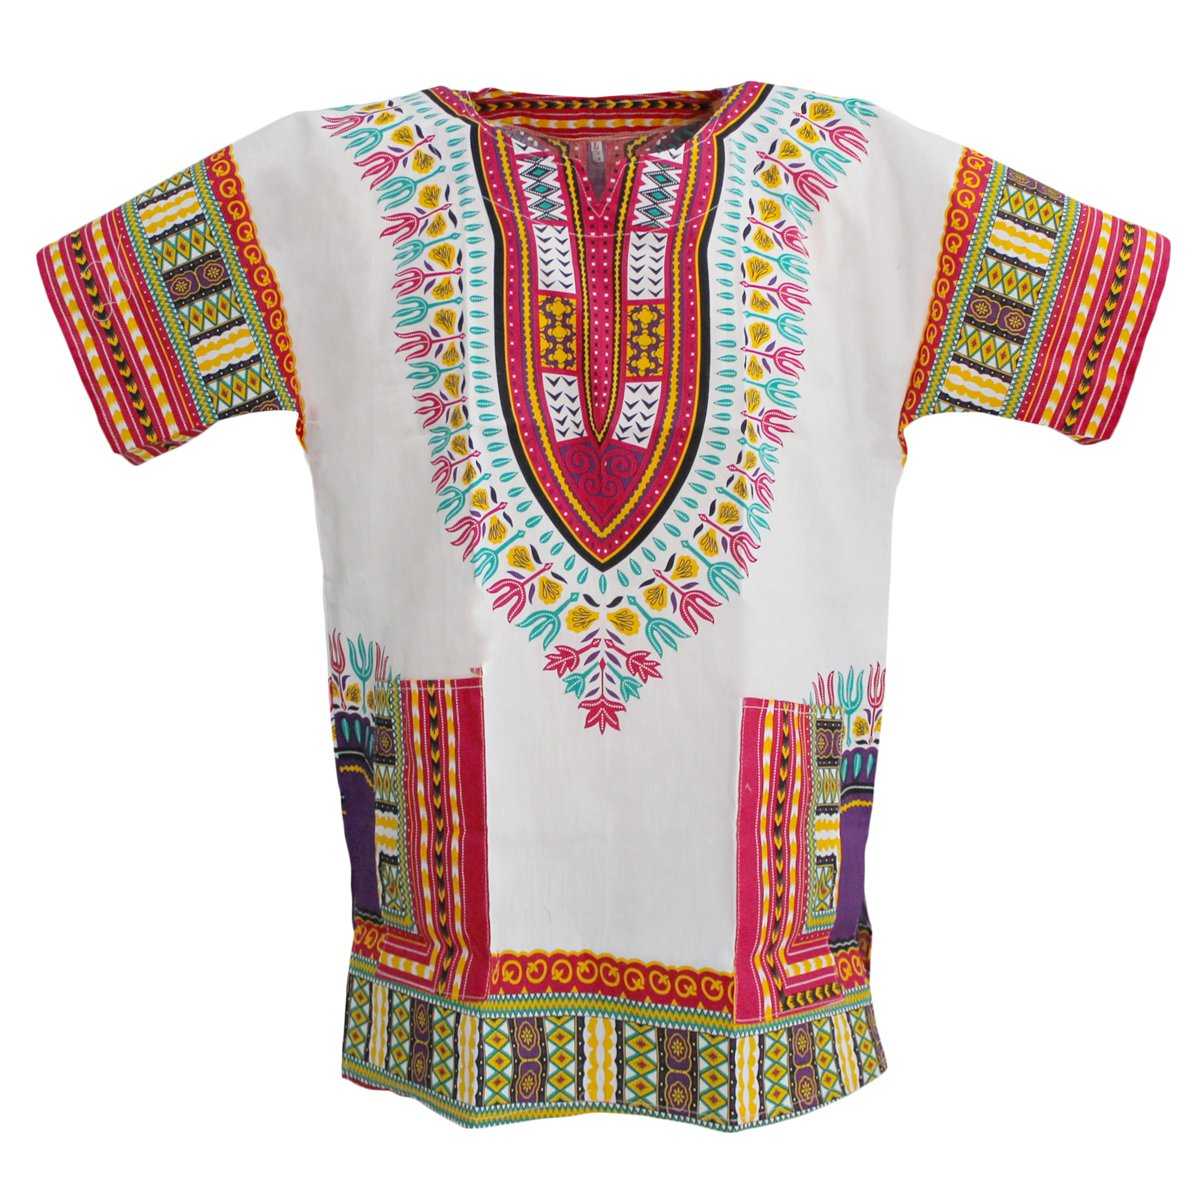 PAGADA BRAND African Dashiki Shirts Collection, Several Colors, 100% Cotton, M - XL Size. (L, White and Pink Mix)